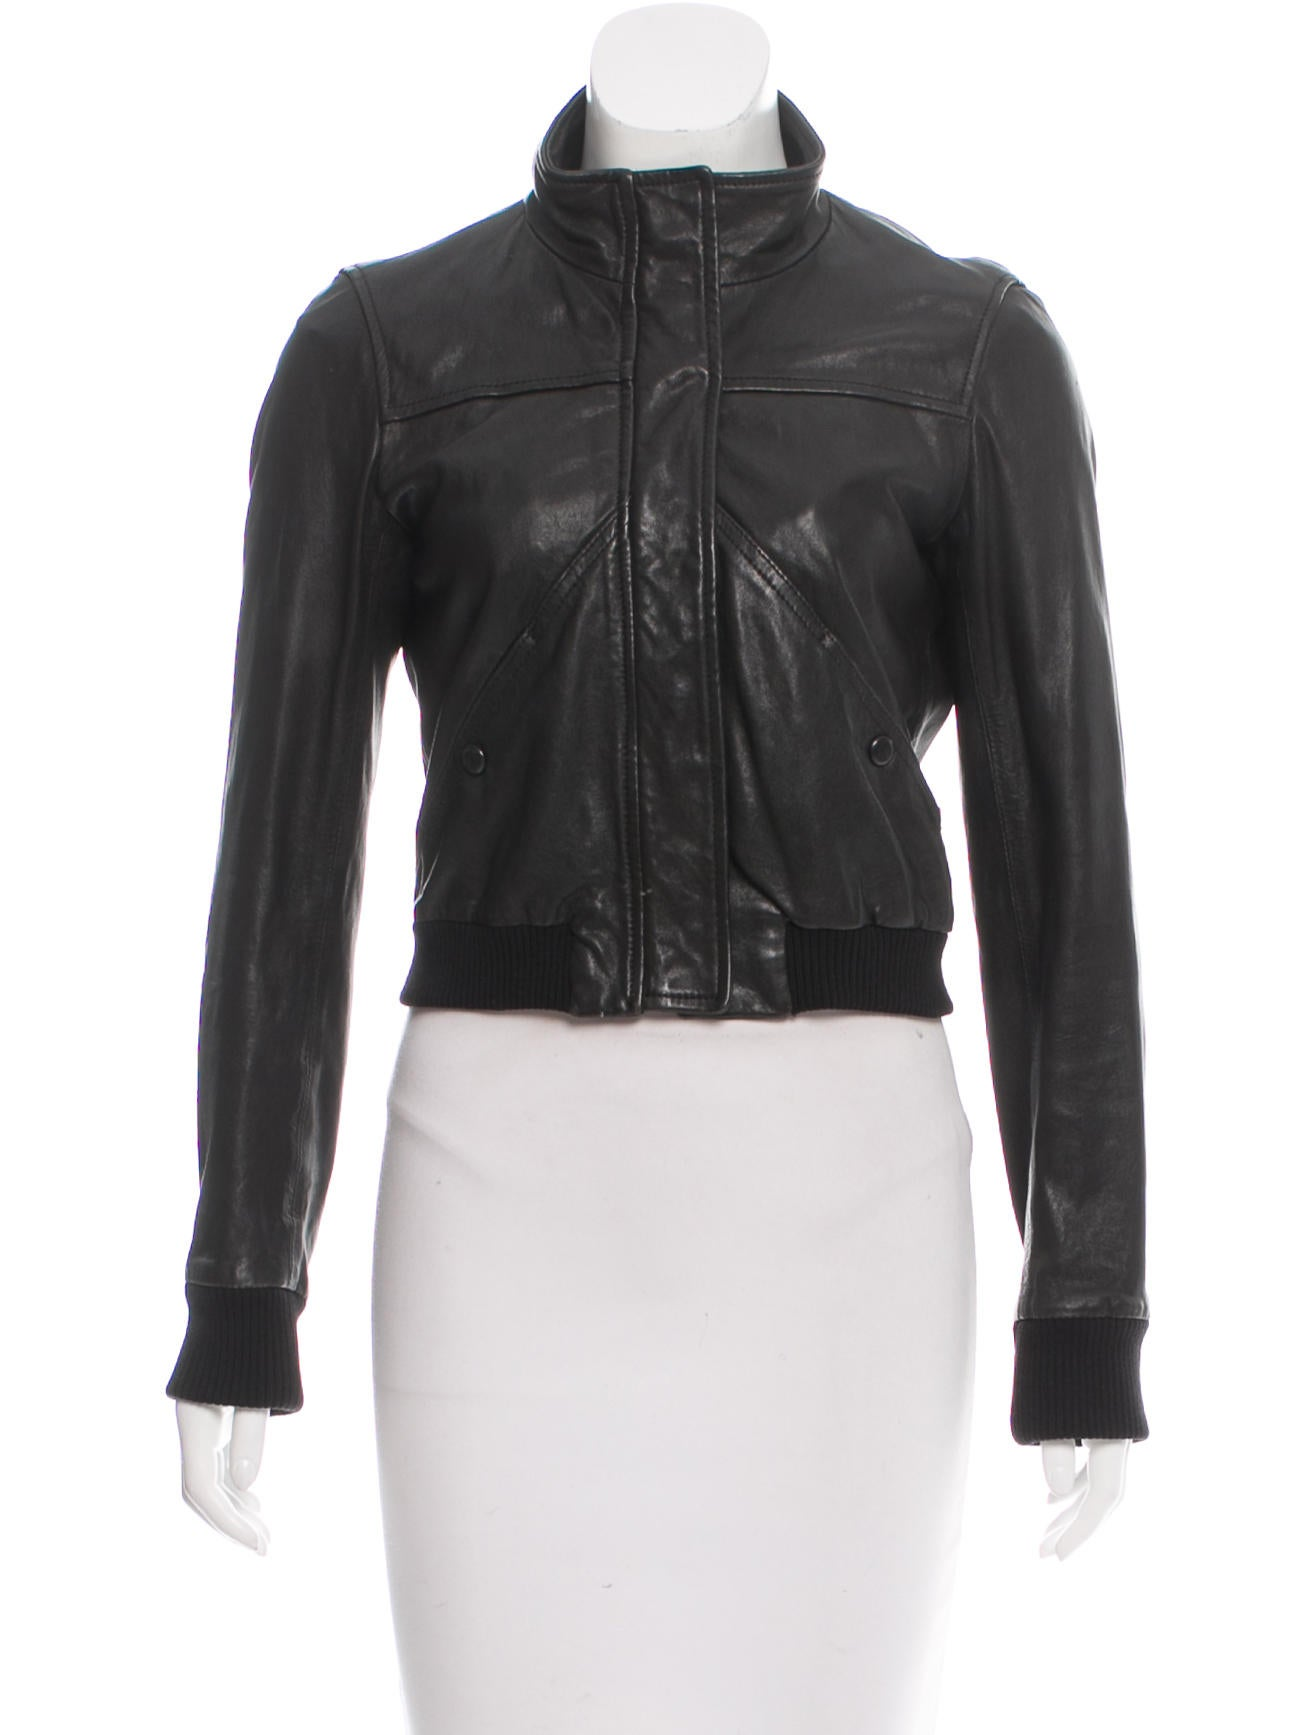 Wool Leather Jackets